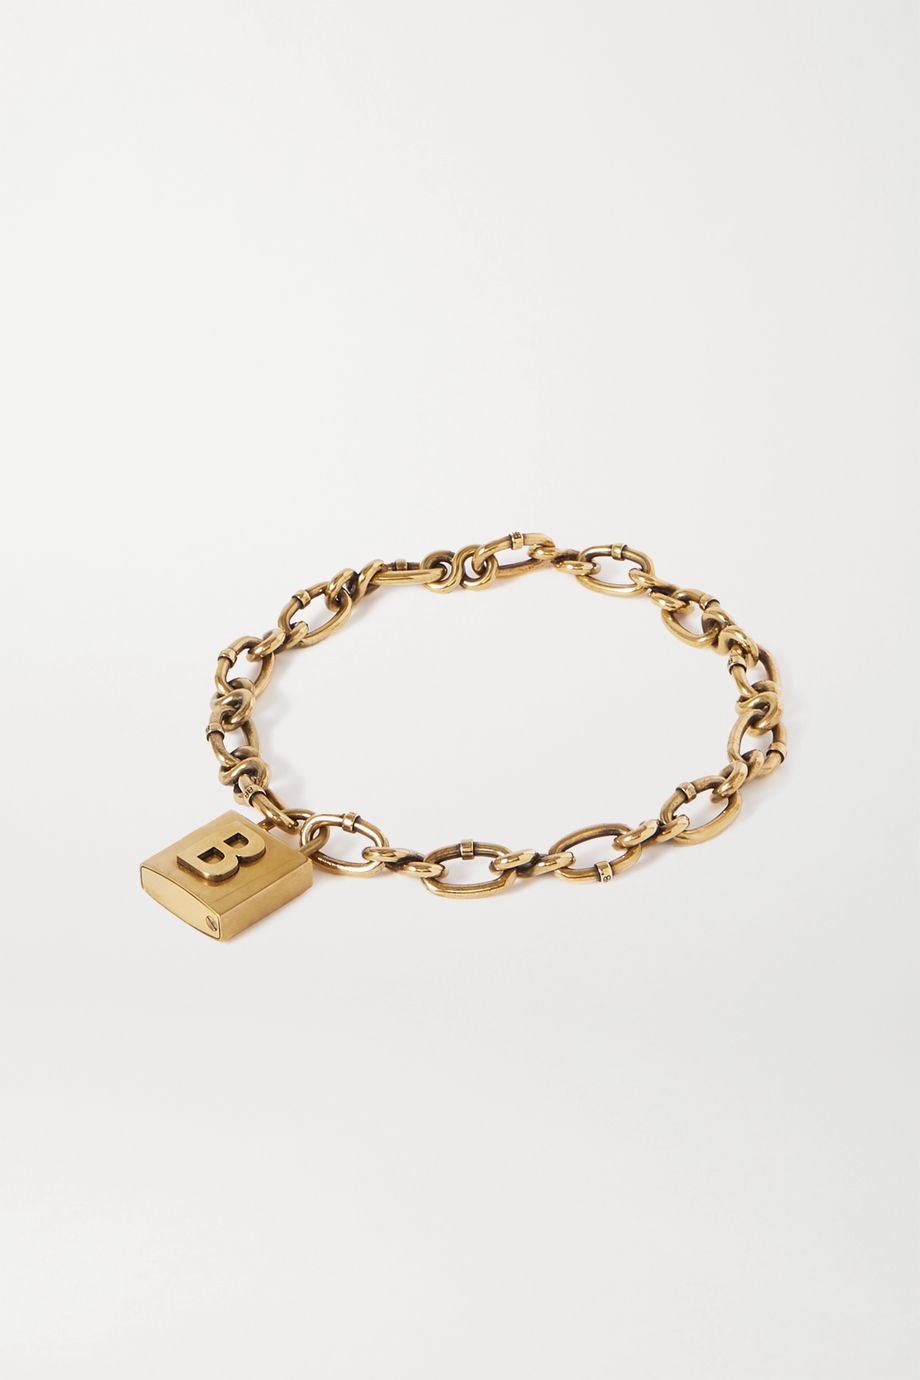 Balenciaga Lock embossed gold-tone necklace